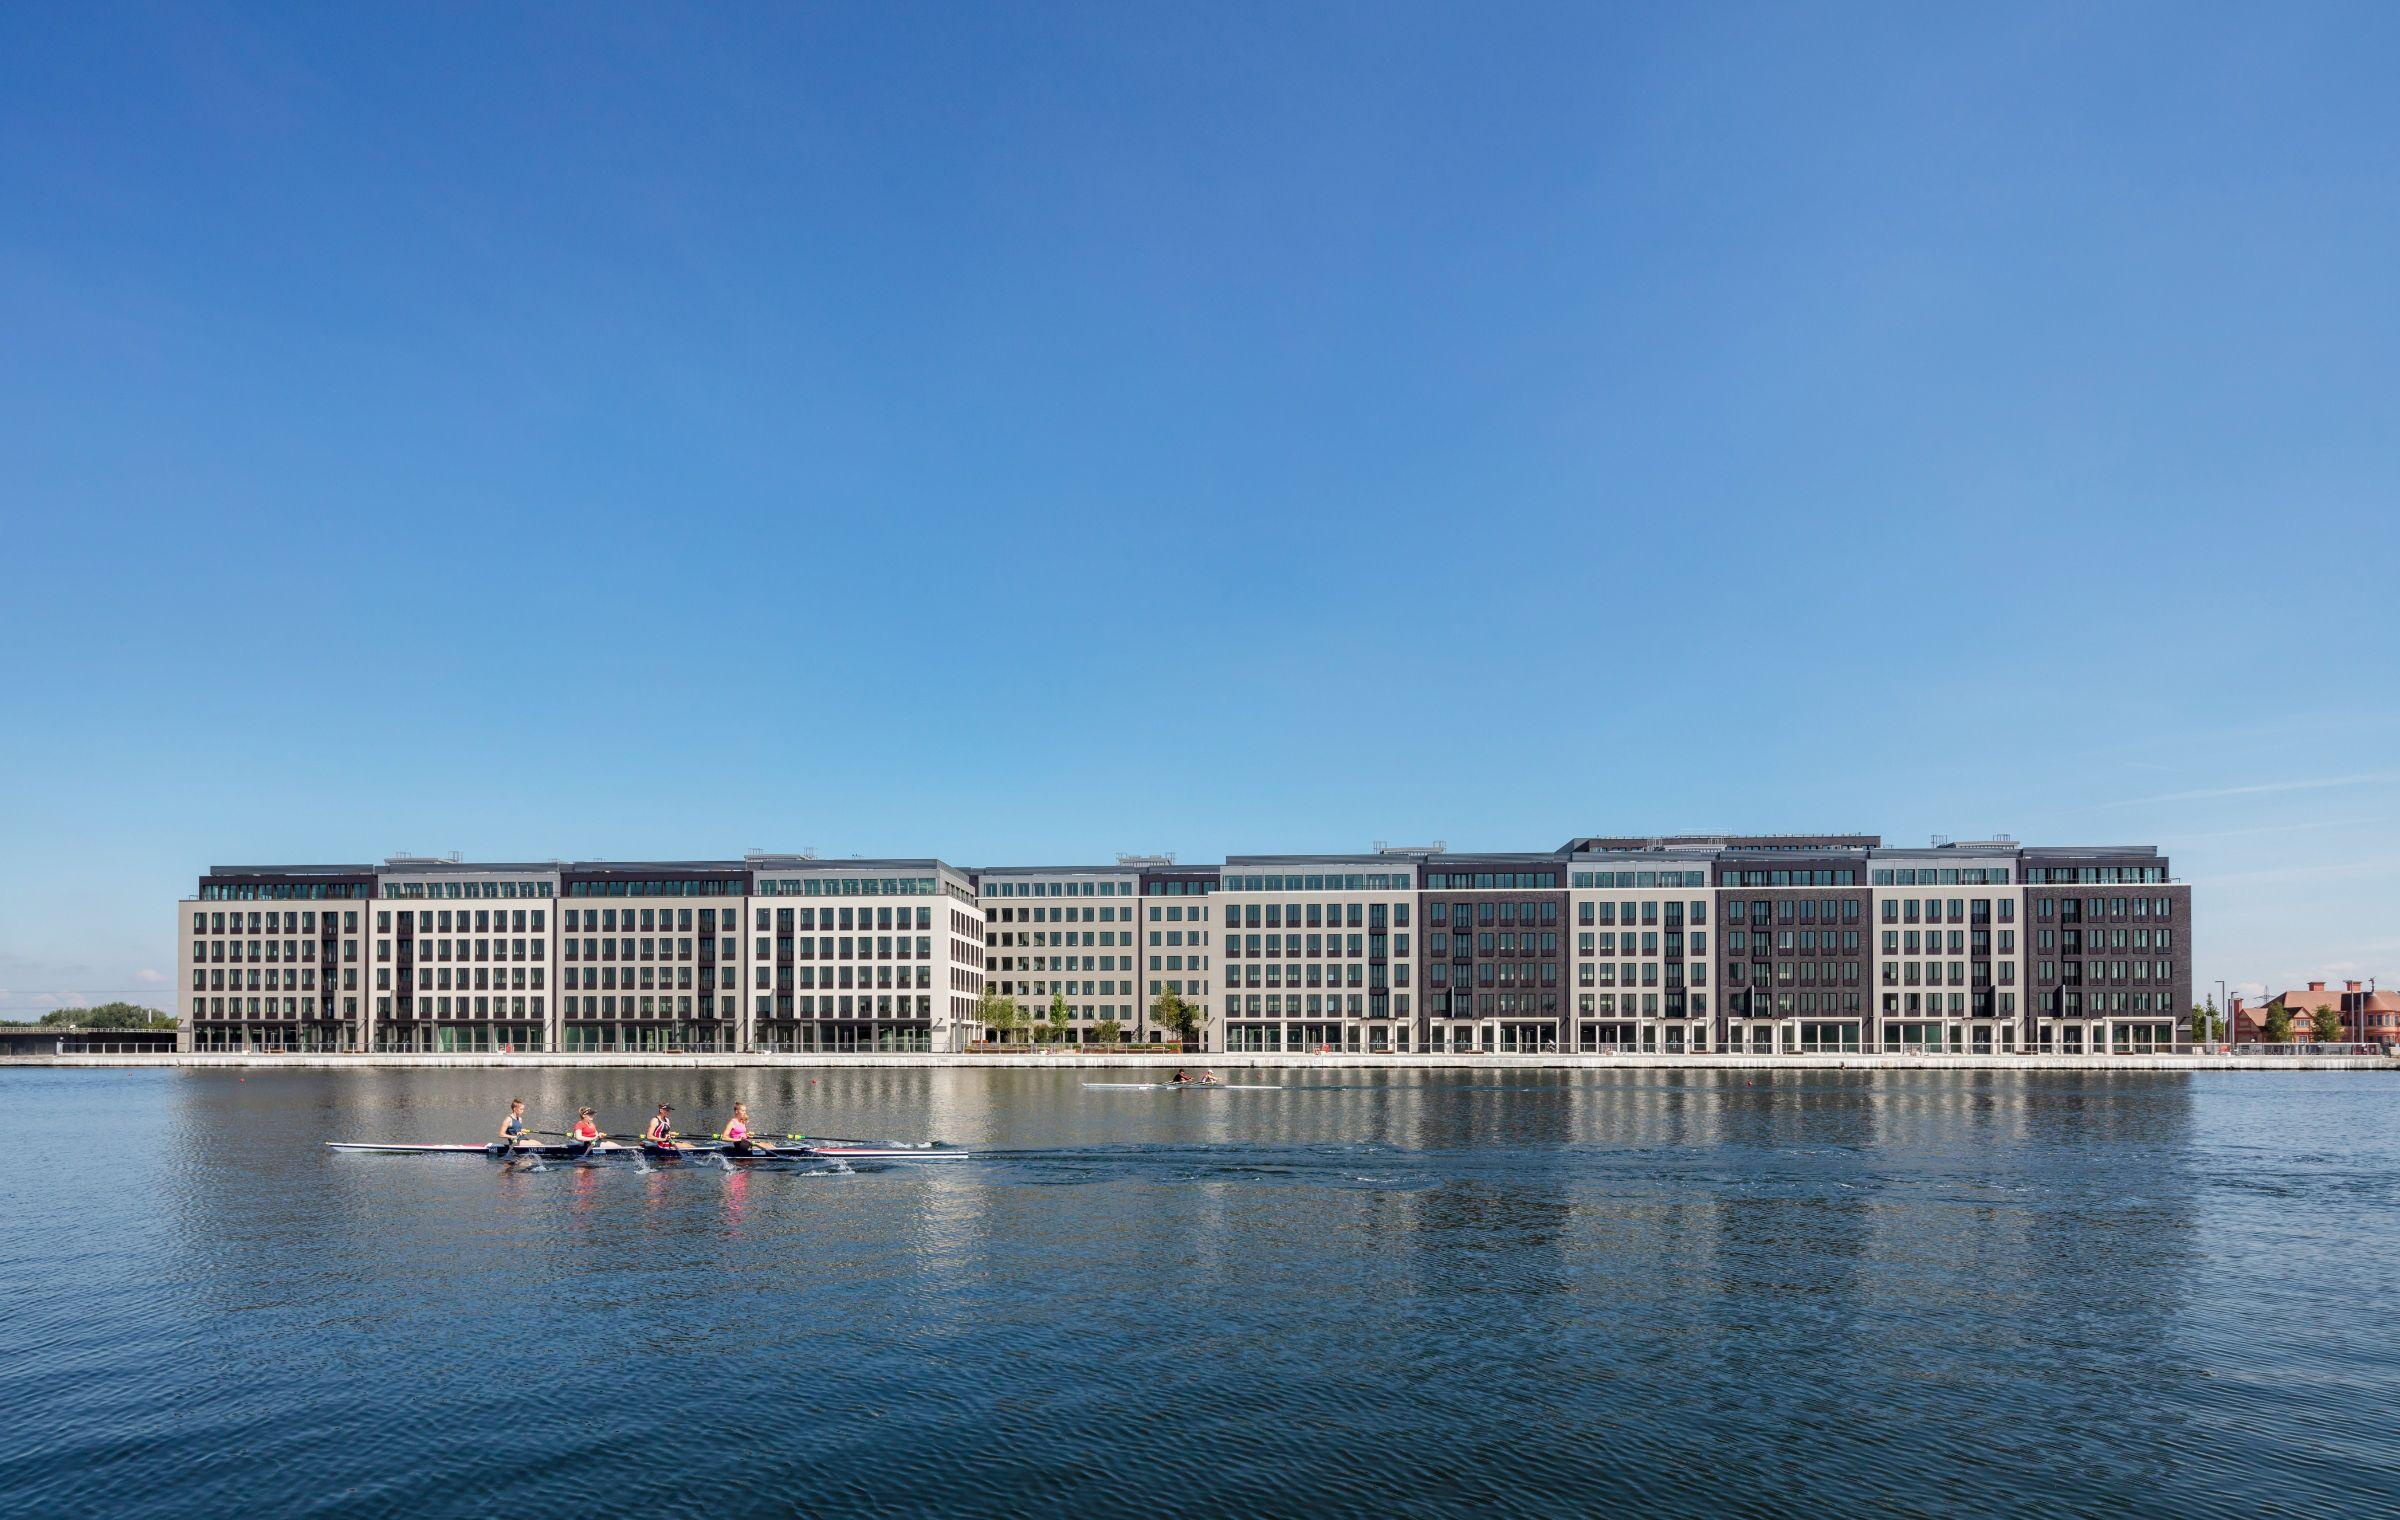 Developments along the Royal Dock with canoeists paddling past